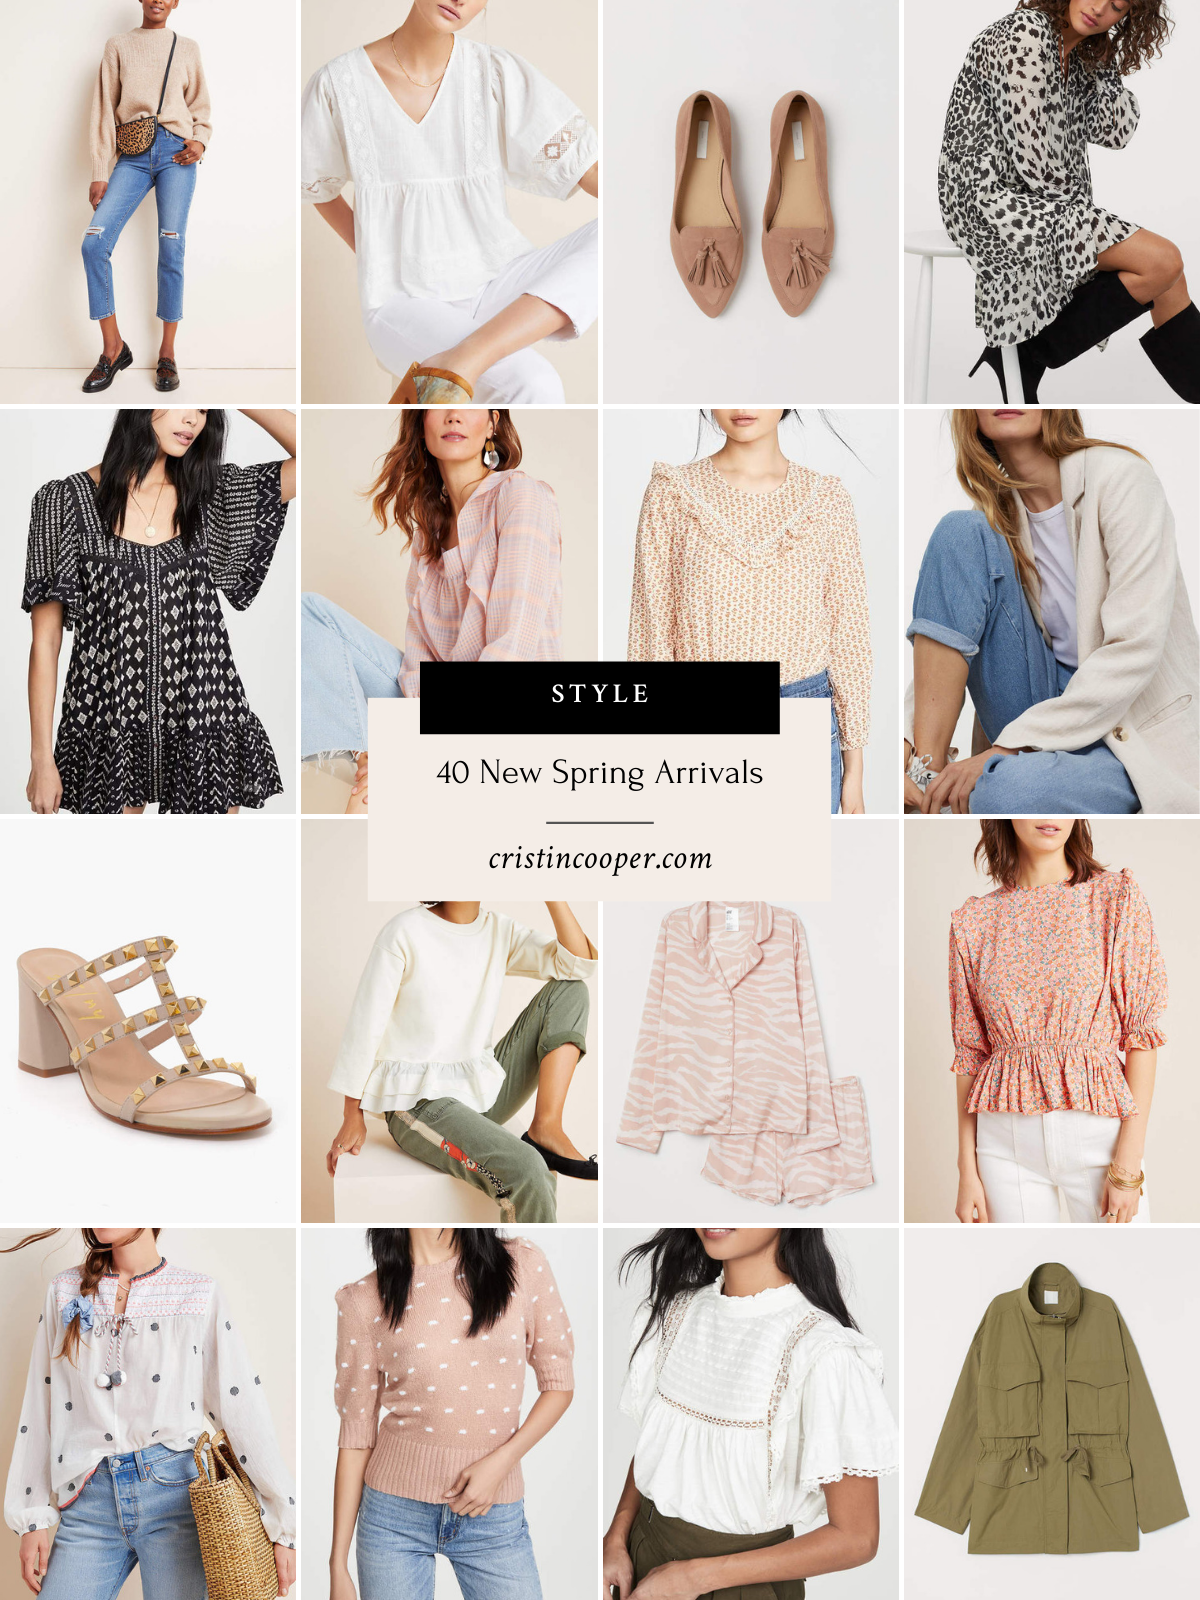 40 New Spring Arrivals